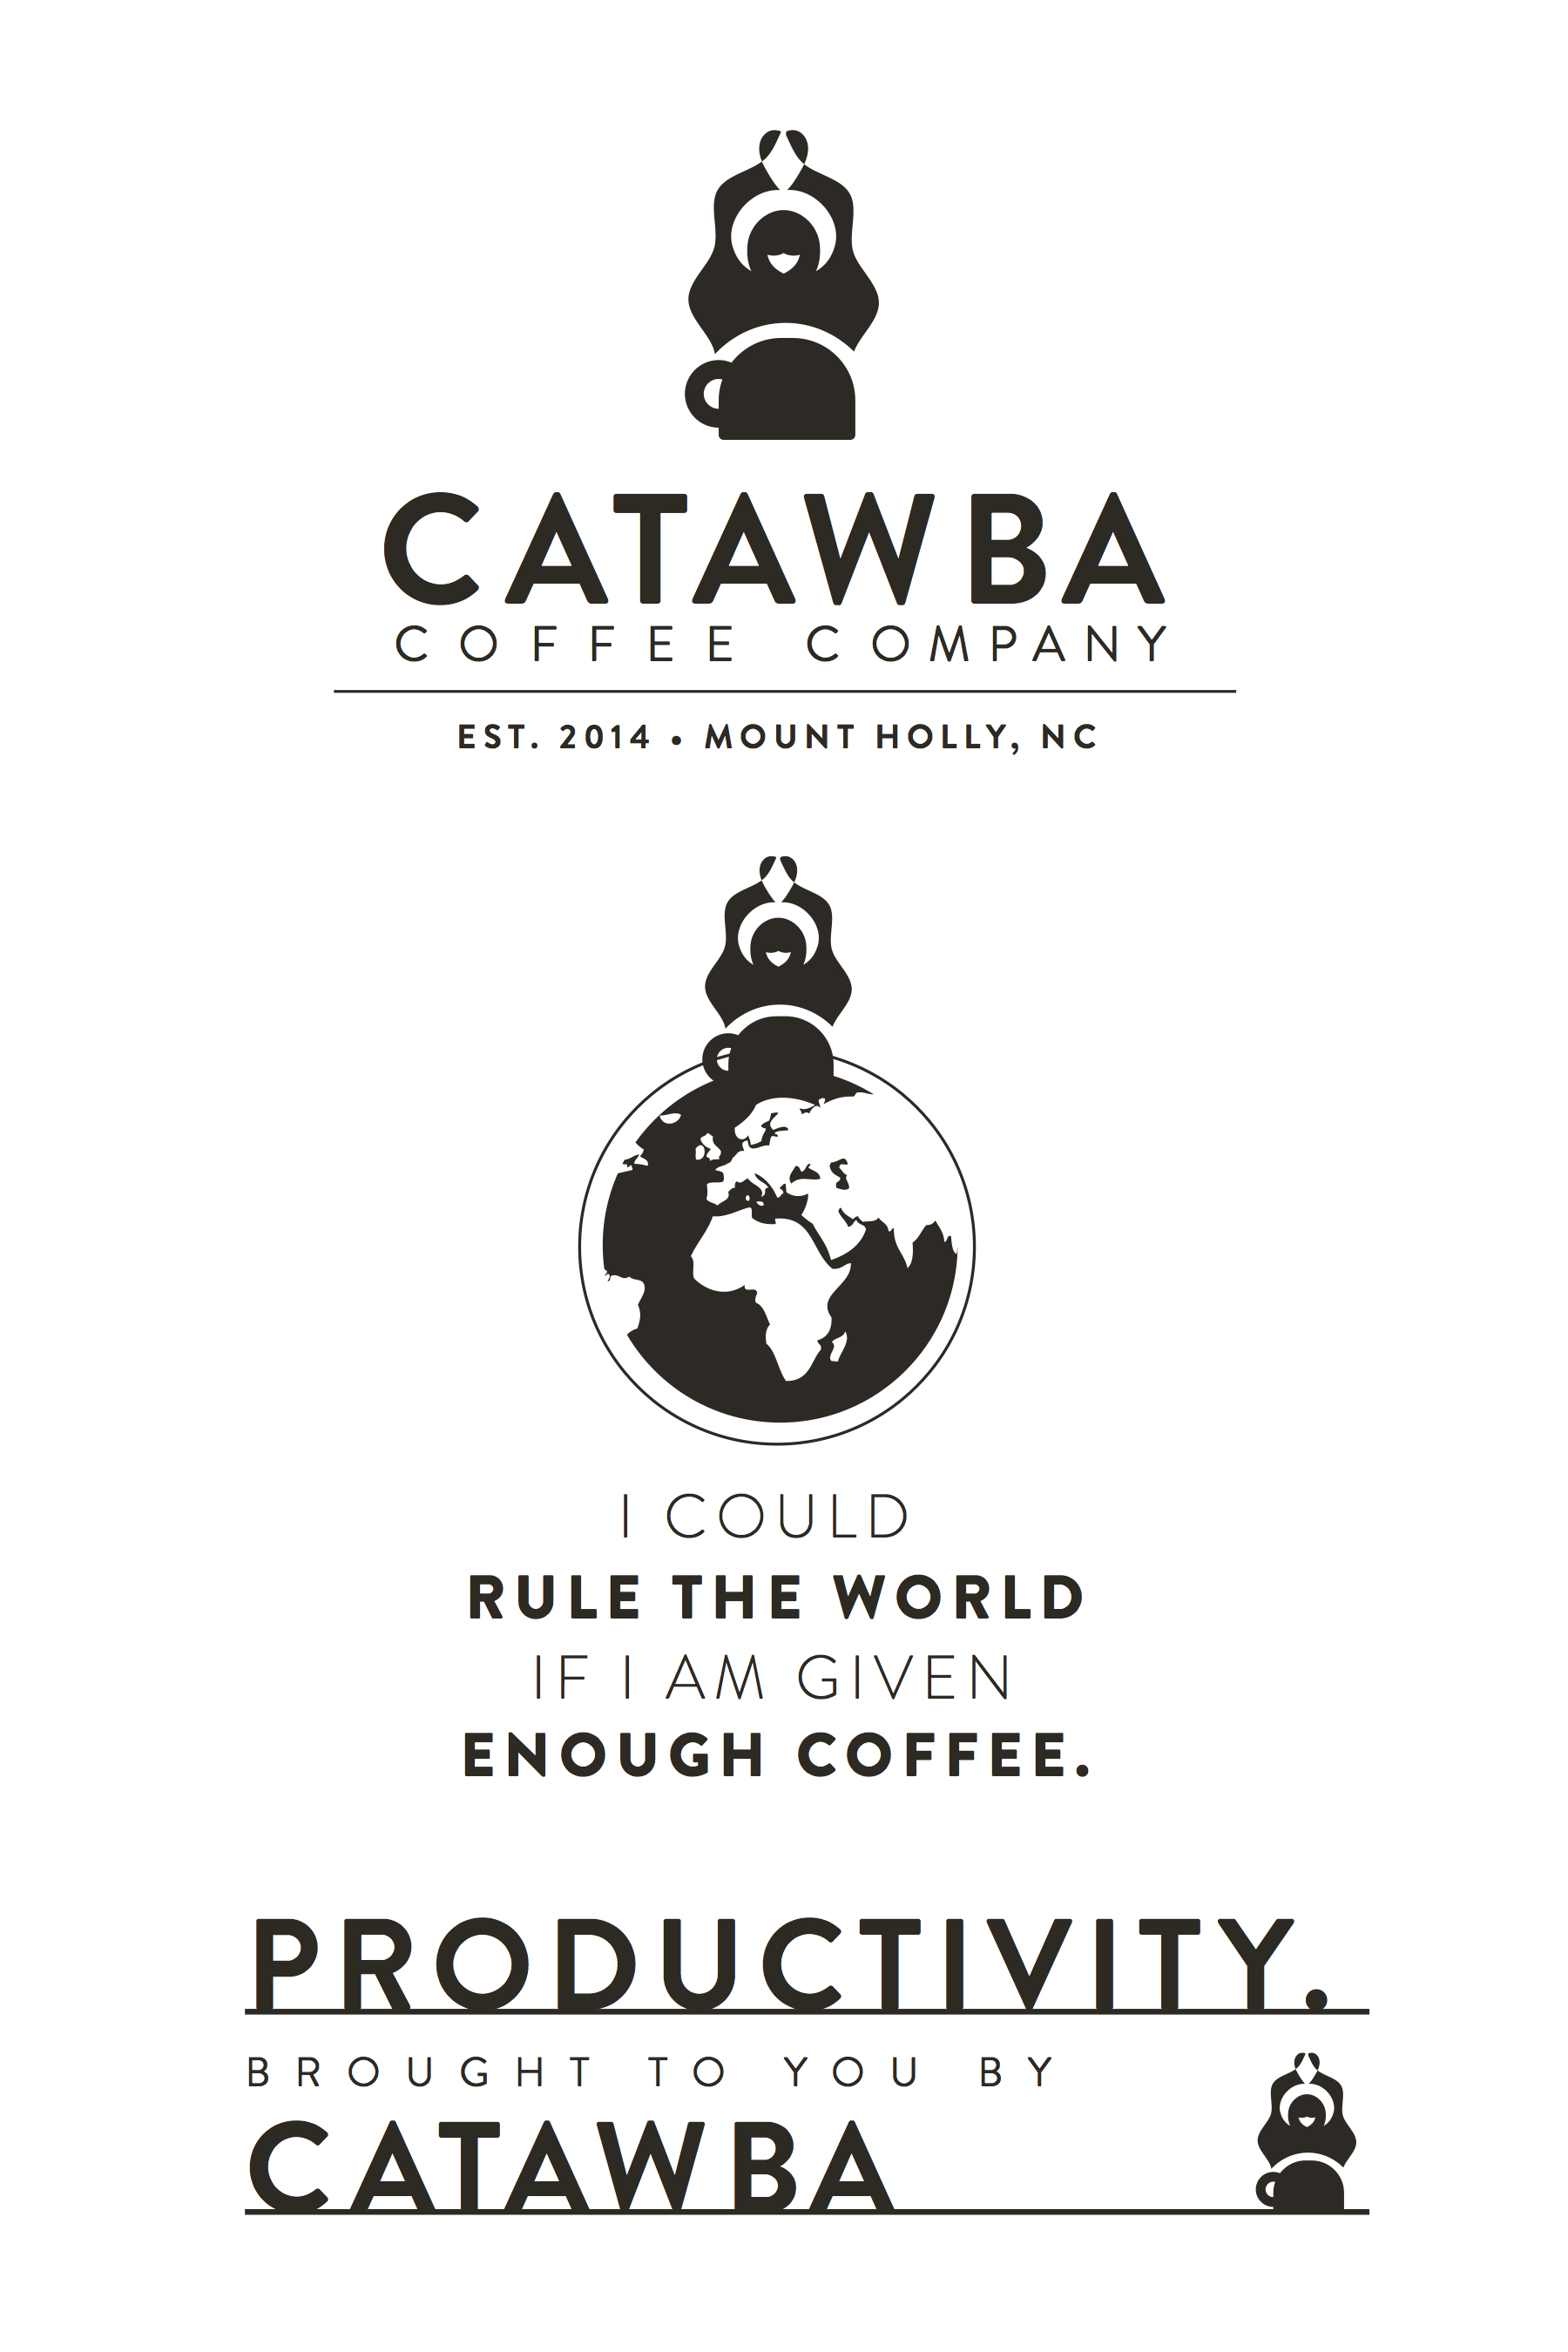 Catawba_Coffee_Logo_IdeaBoards-4.jpg